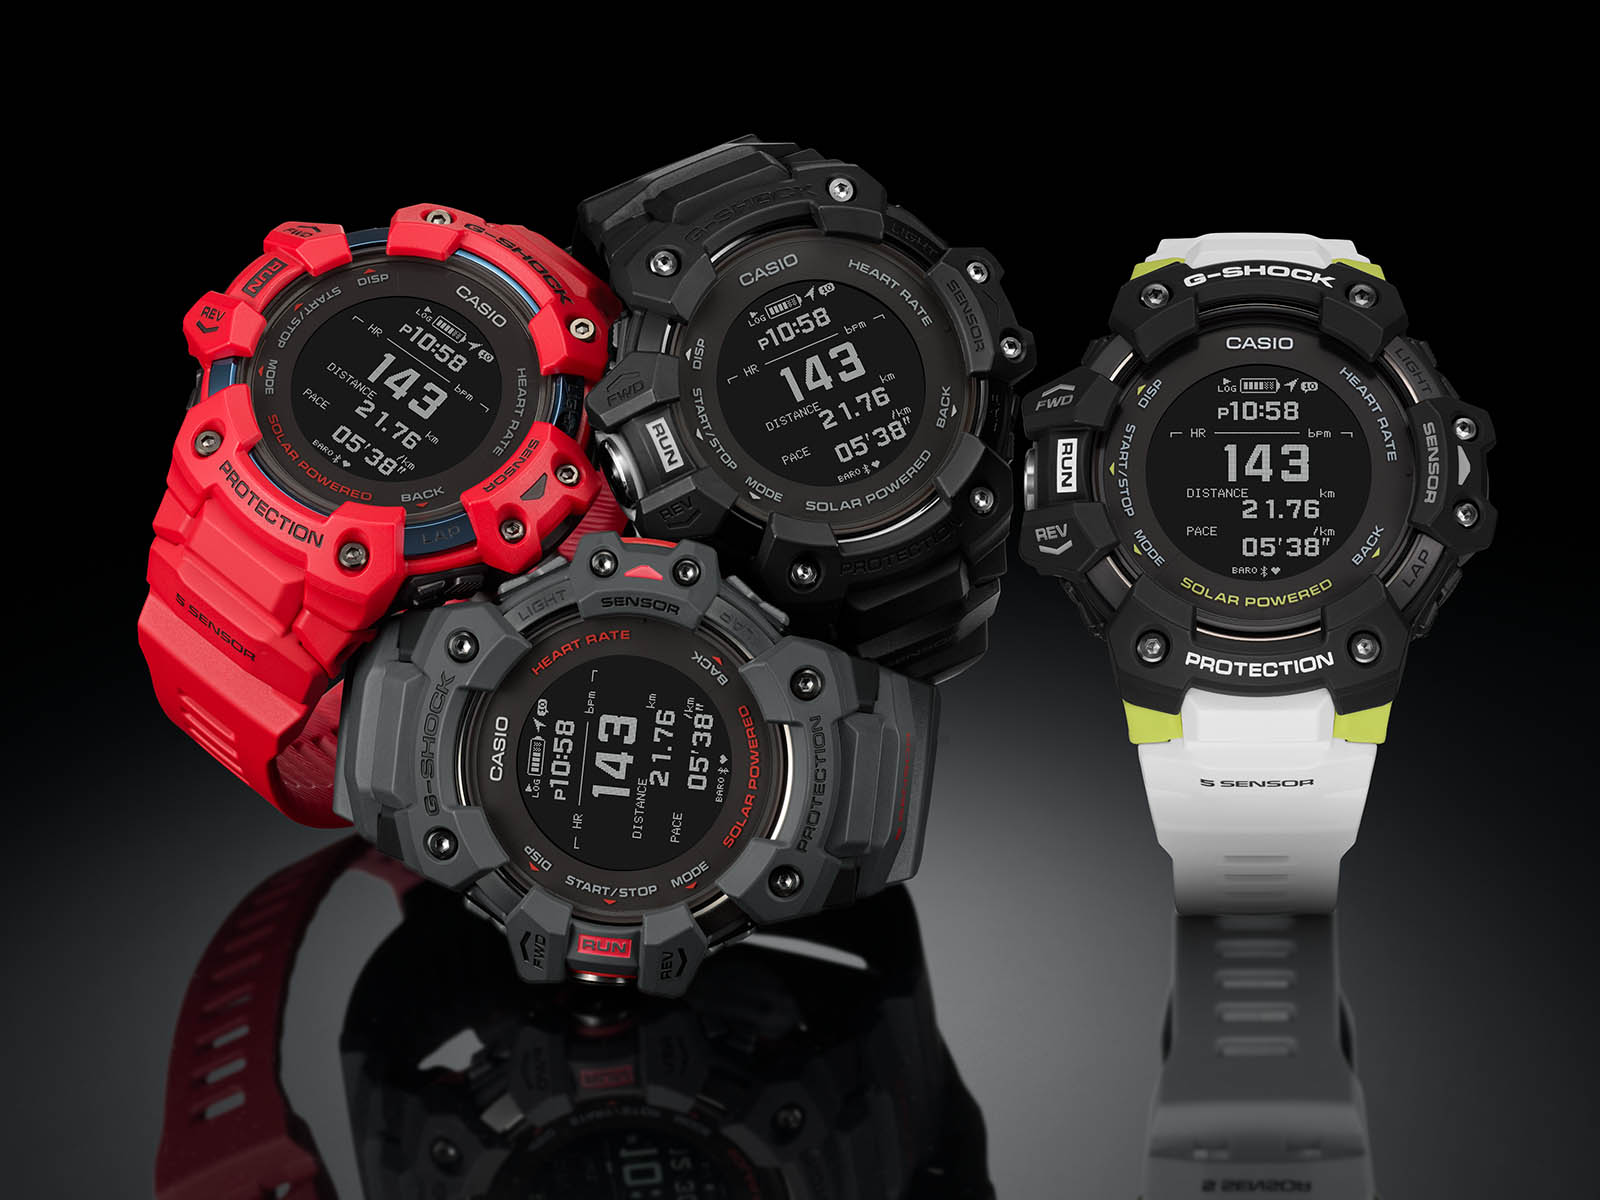 quarantine-friendly-connected-watches-gbdh1000-1a7-casio-g-shock.jpg